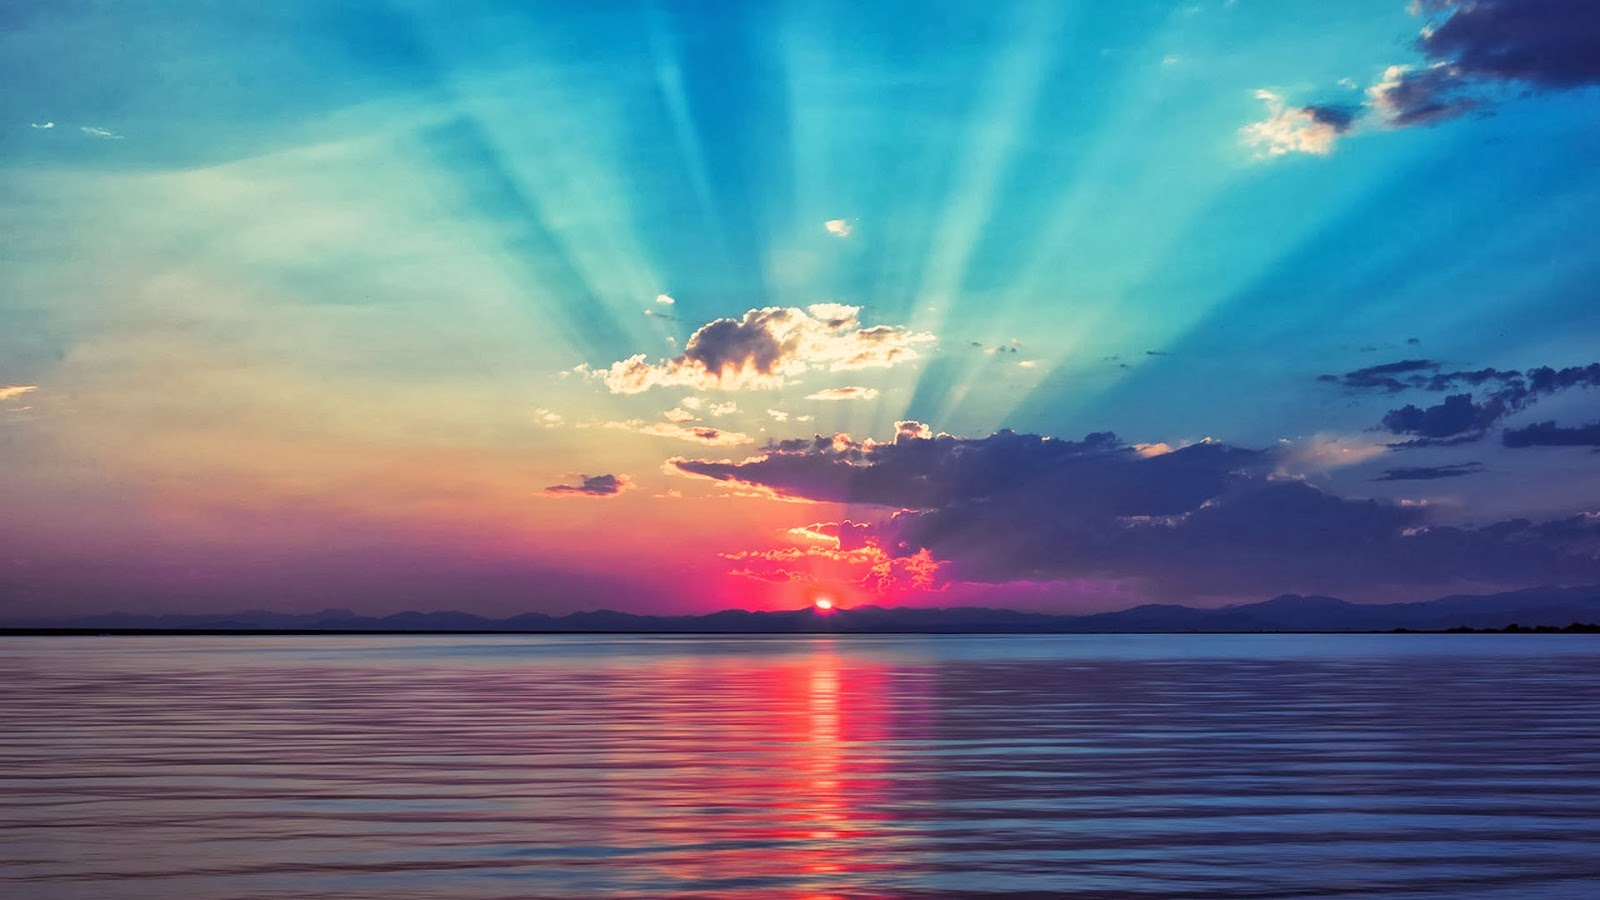 Sunrise HD Wallpaper - WallpaperSafari